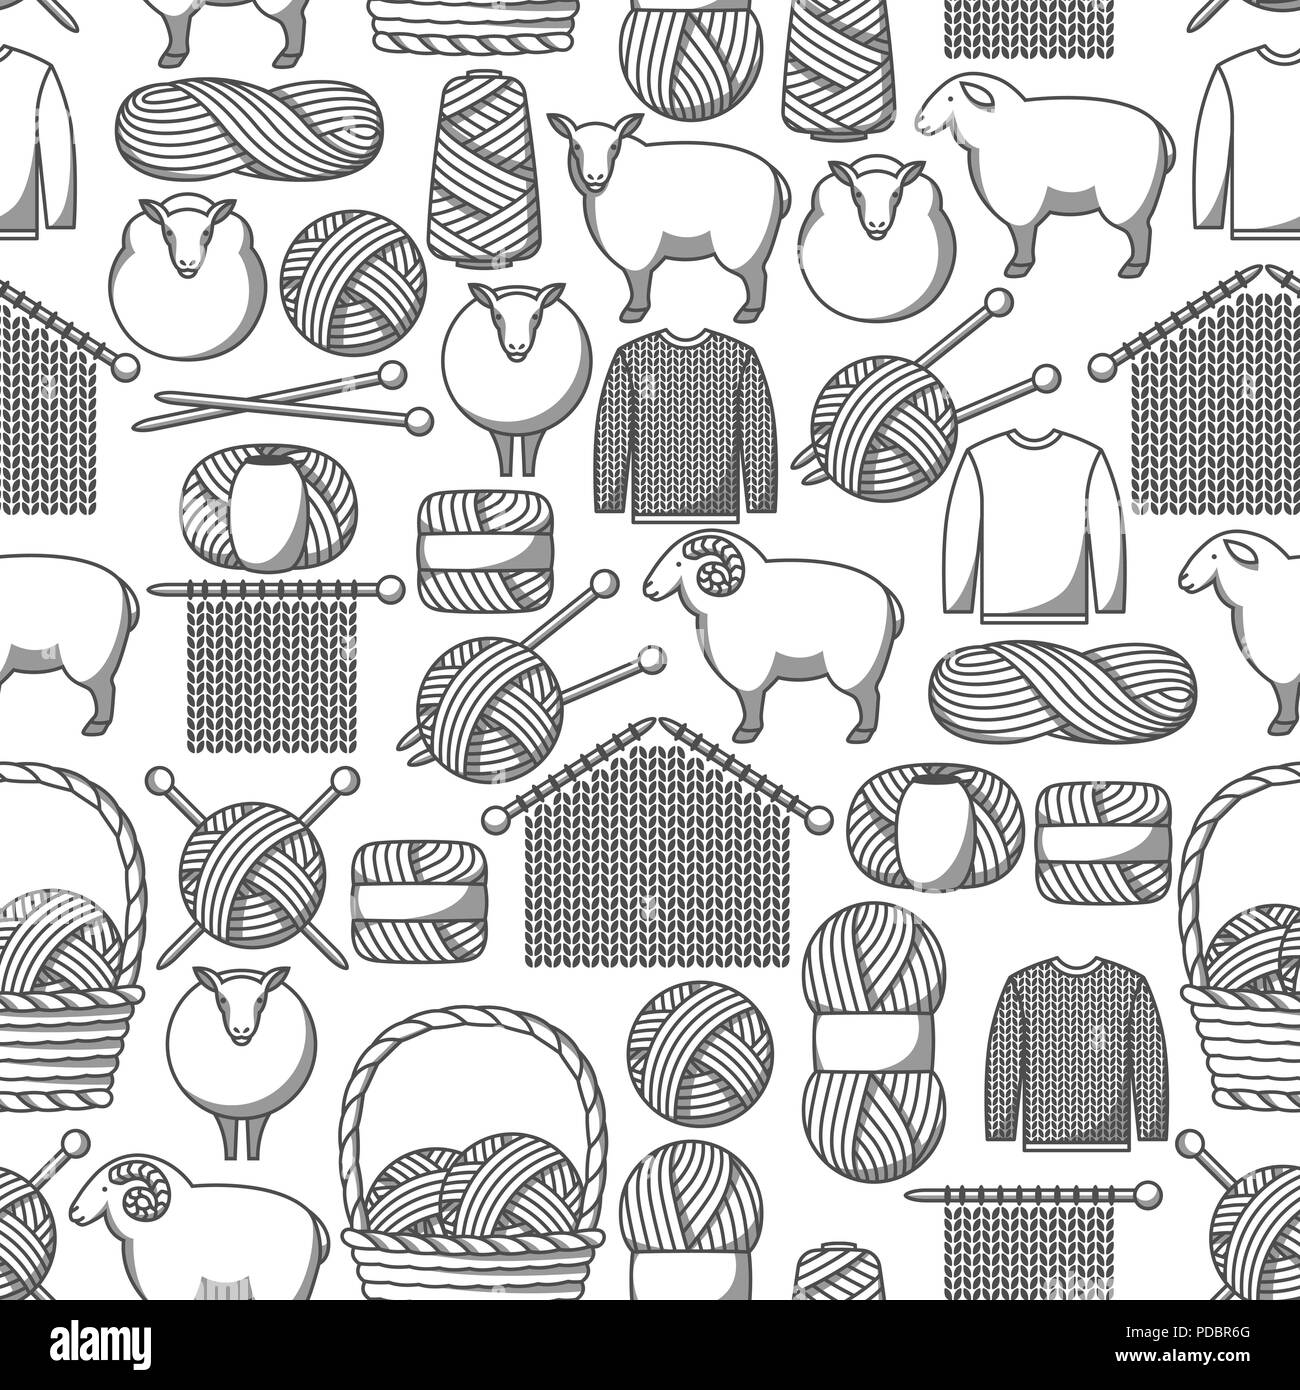 Seamless pattern with wool items. Goods for hand made, knitting or tailor shop - Stock Vector